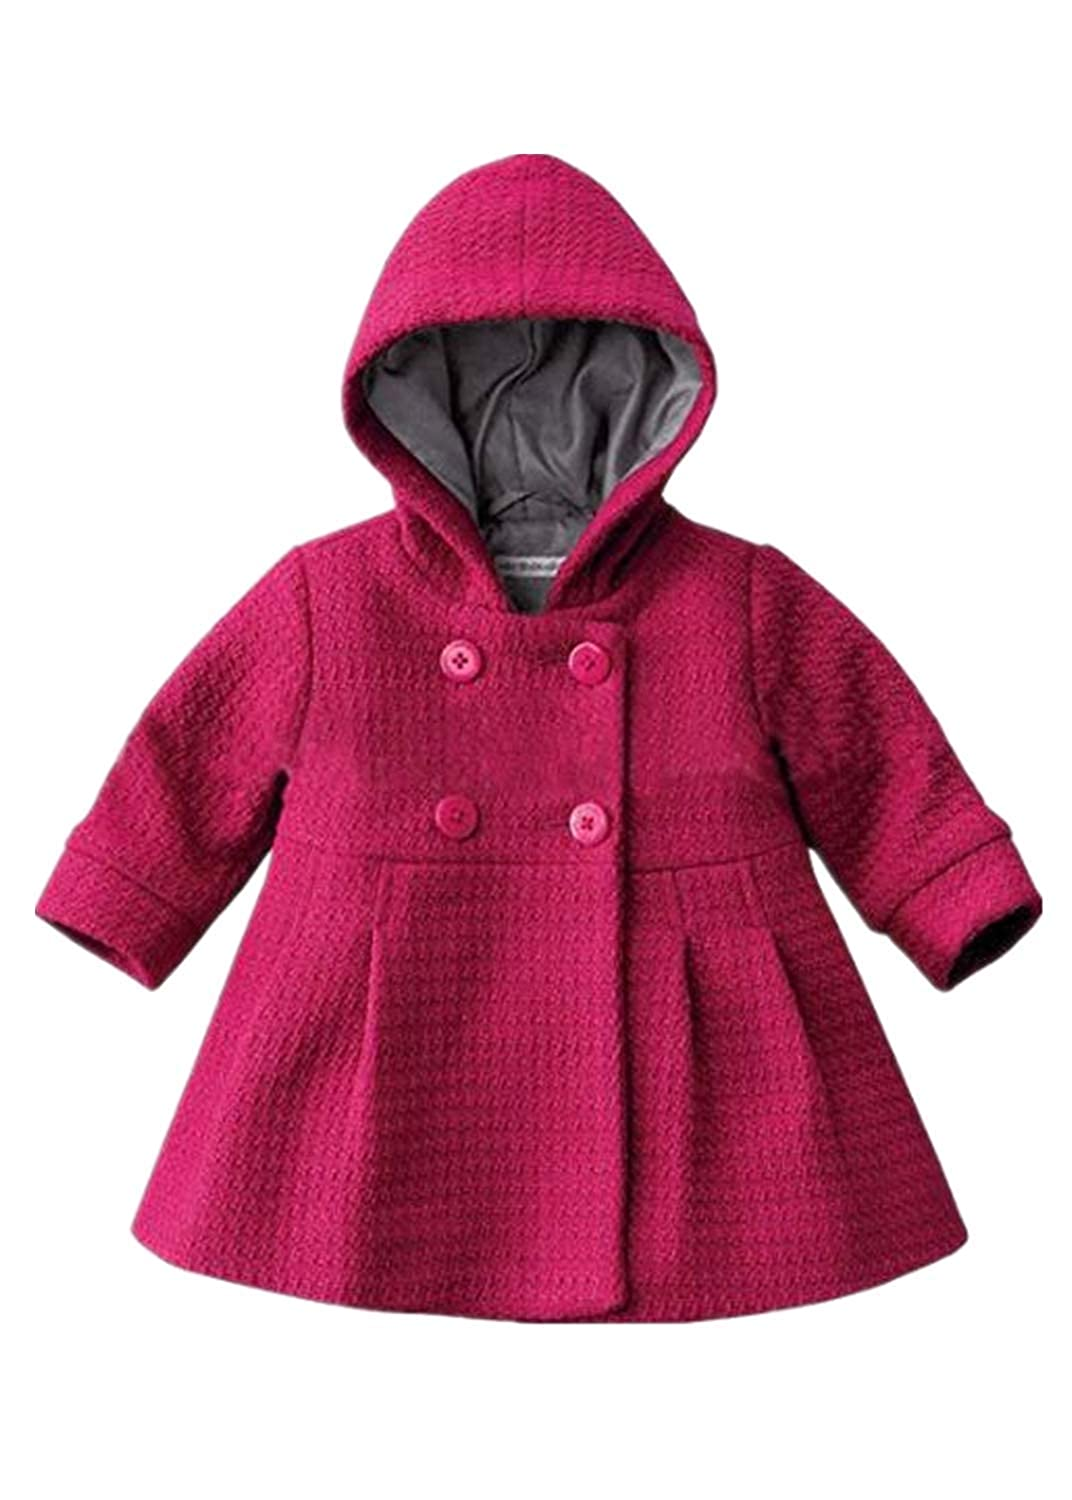 VERYC Baby Girls Coat Hooded Long Sleeve A Line Jacket Outerwear Top